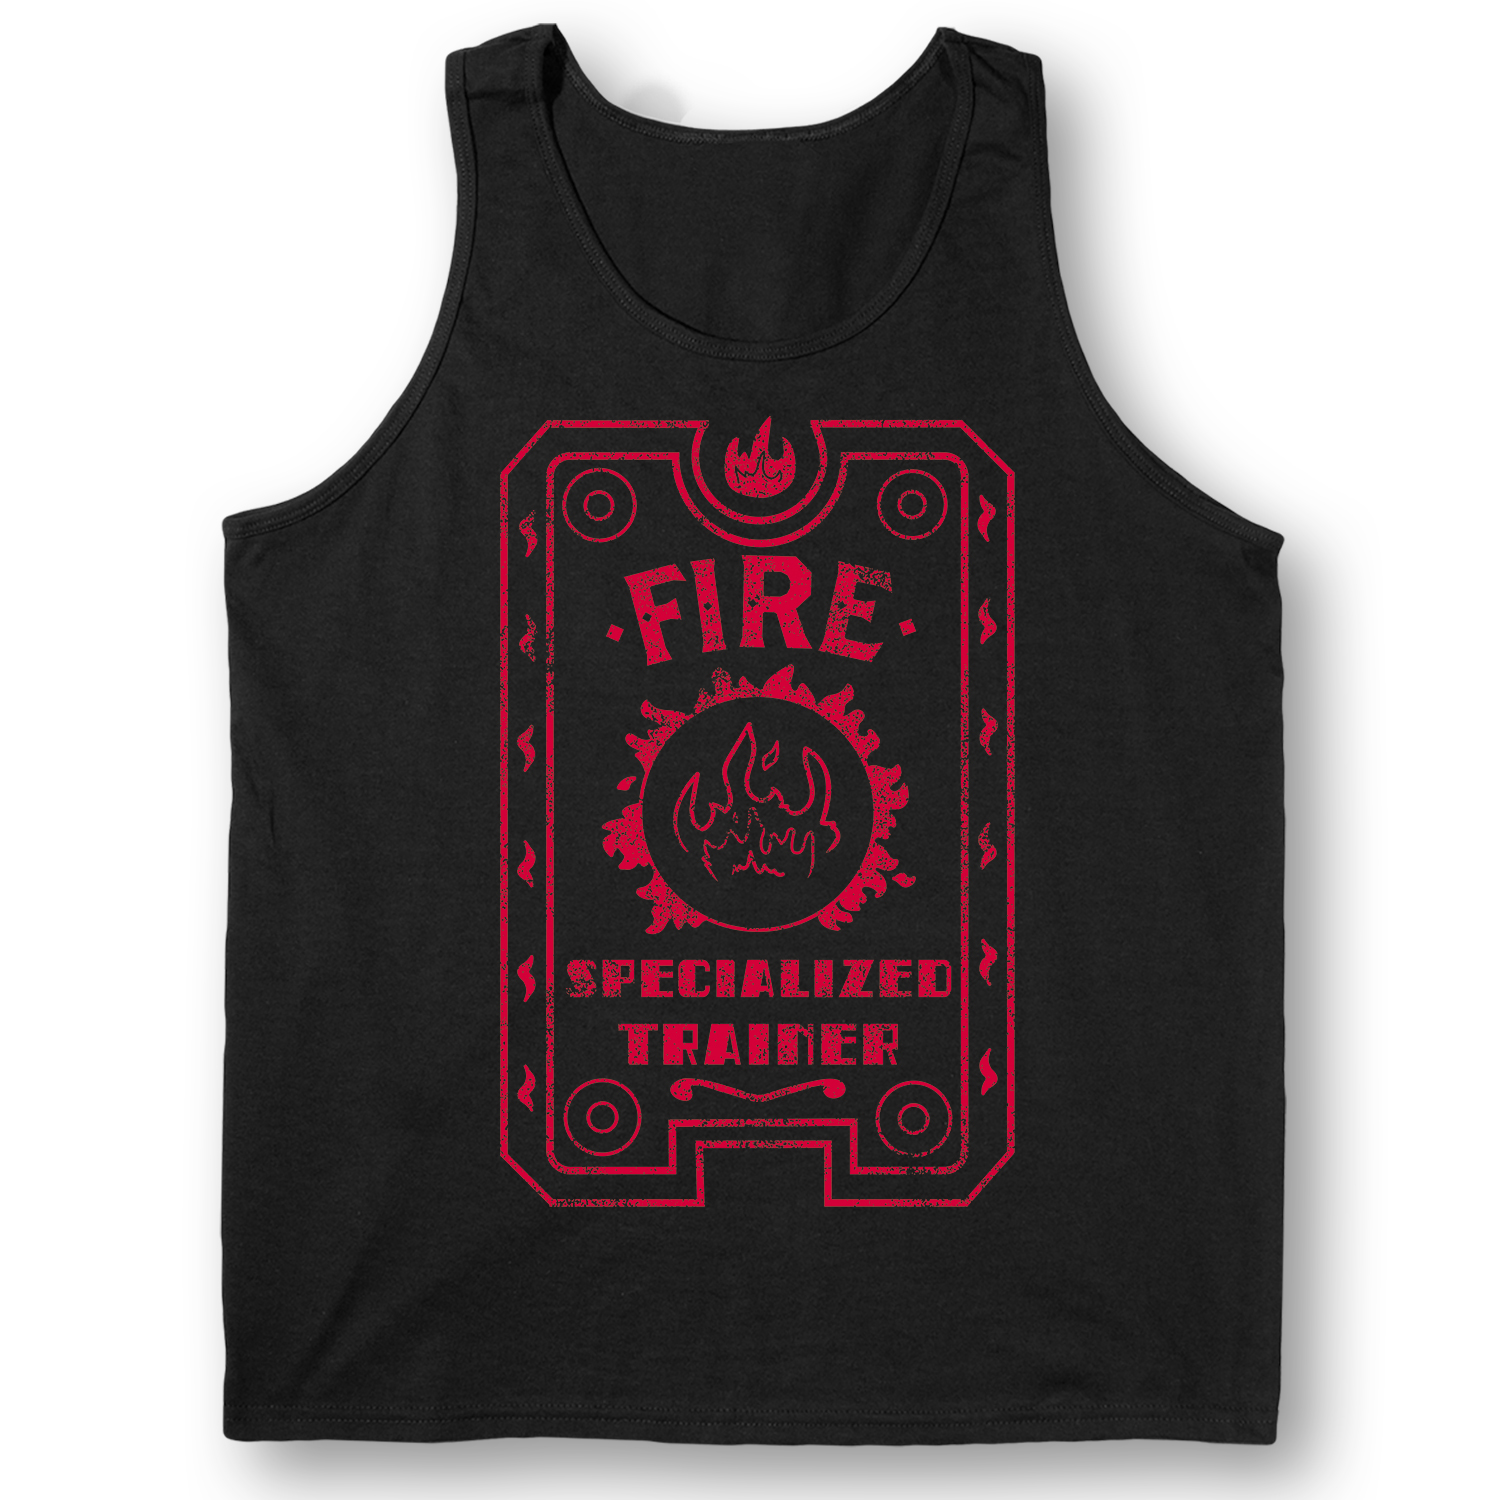 Fire Specialized Trainer-ADULT TANK TOP